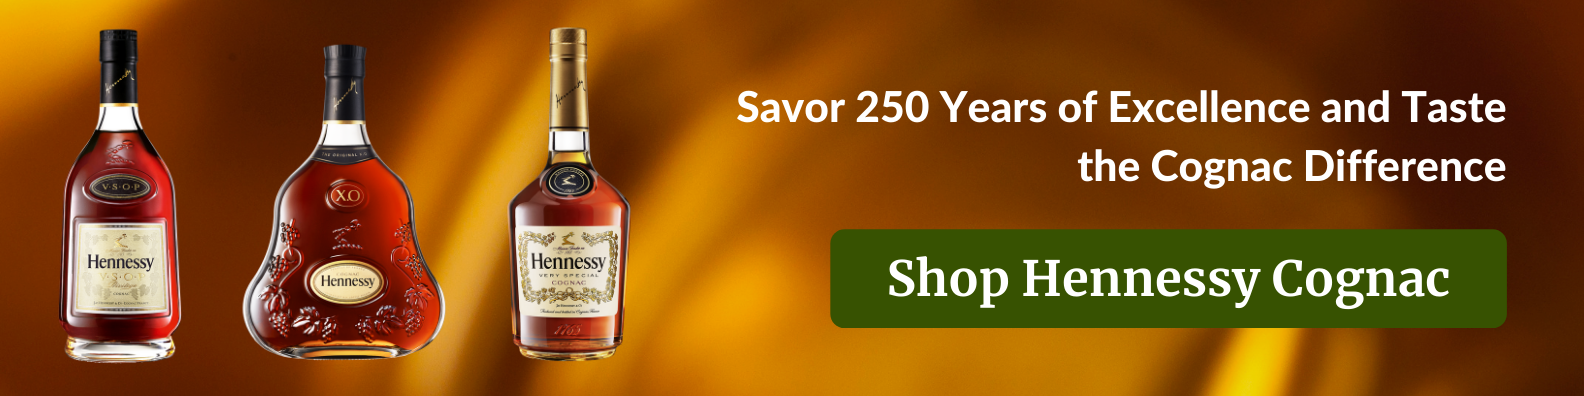 shop hennessy cognac in the philippines at the best prices